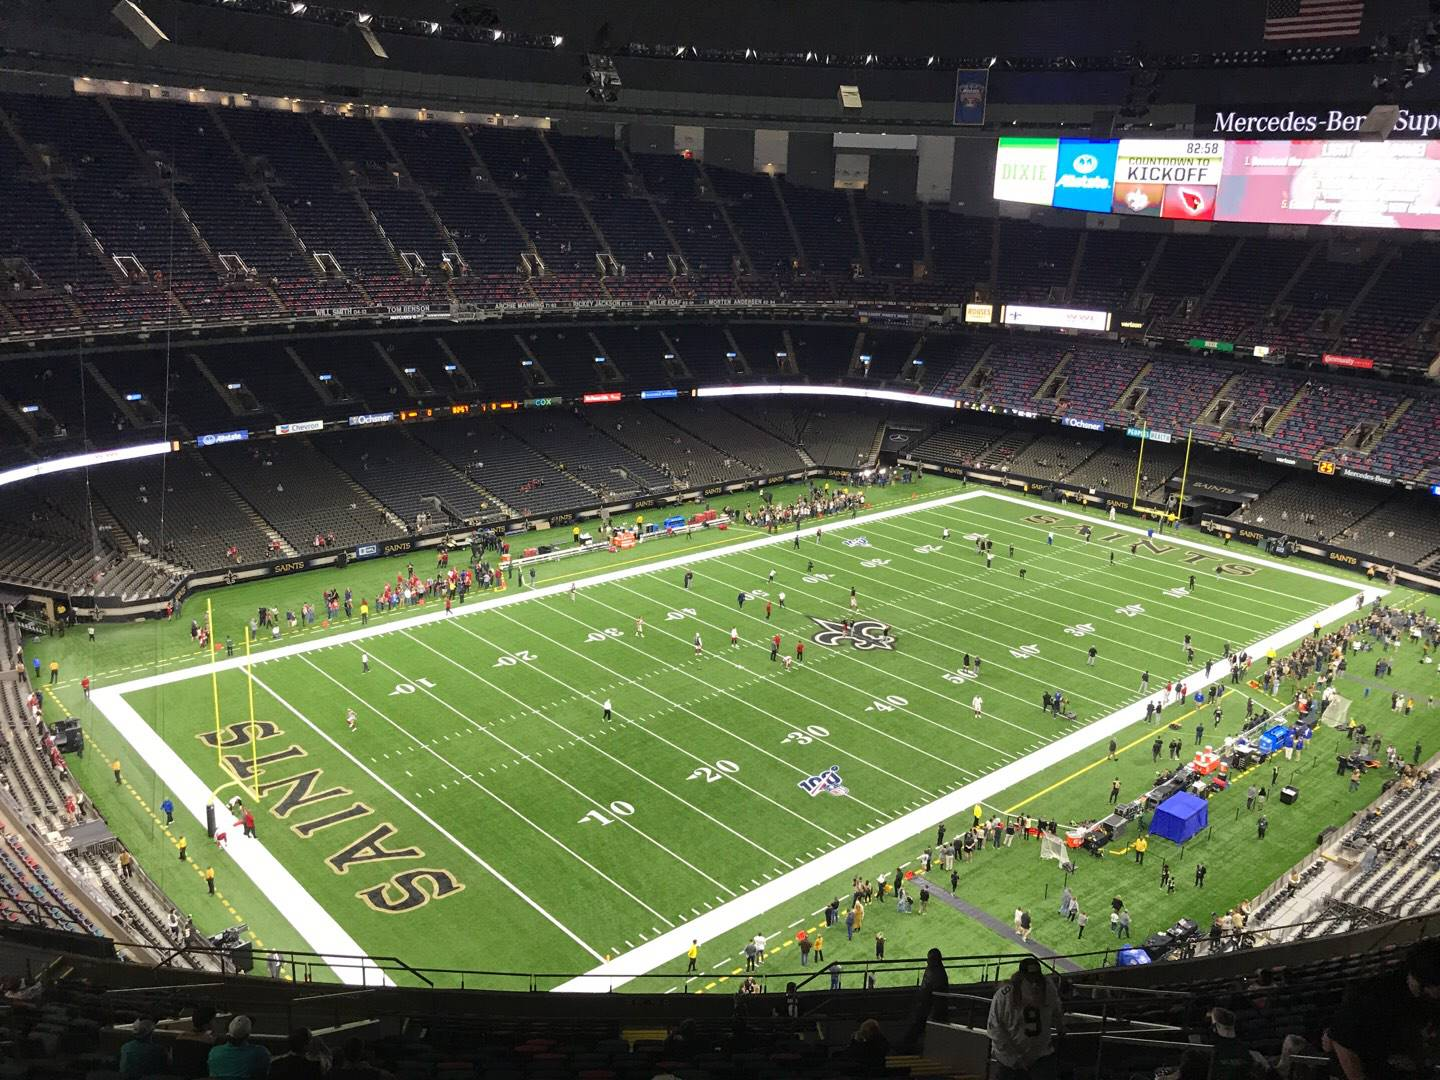 Mercedes-Benz Superdome Section 647 Row 26 Seat 9